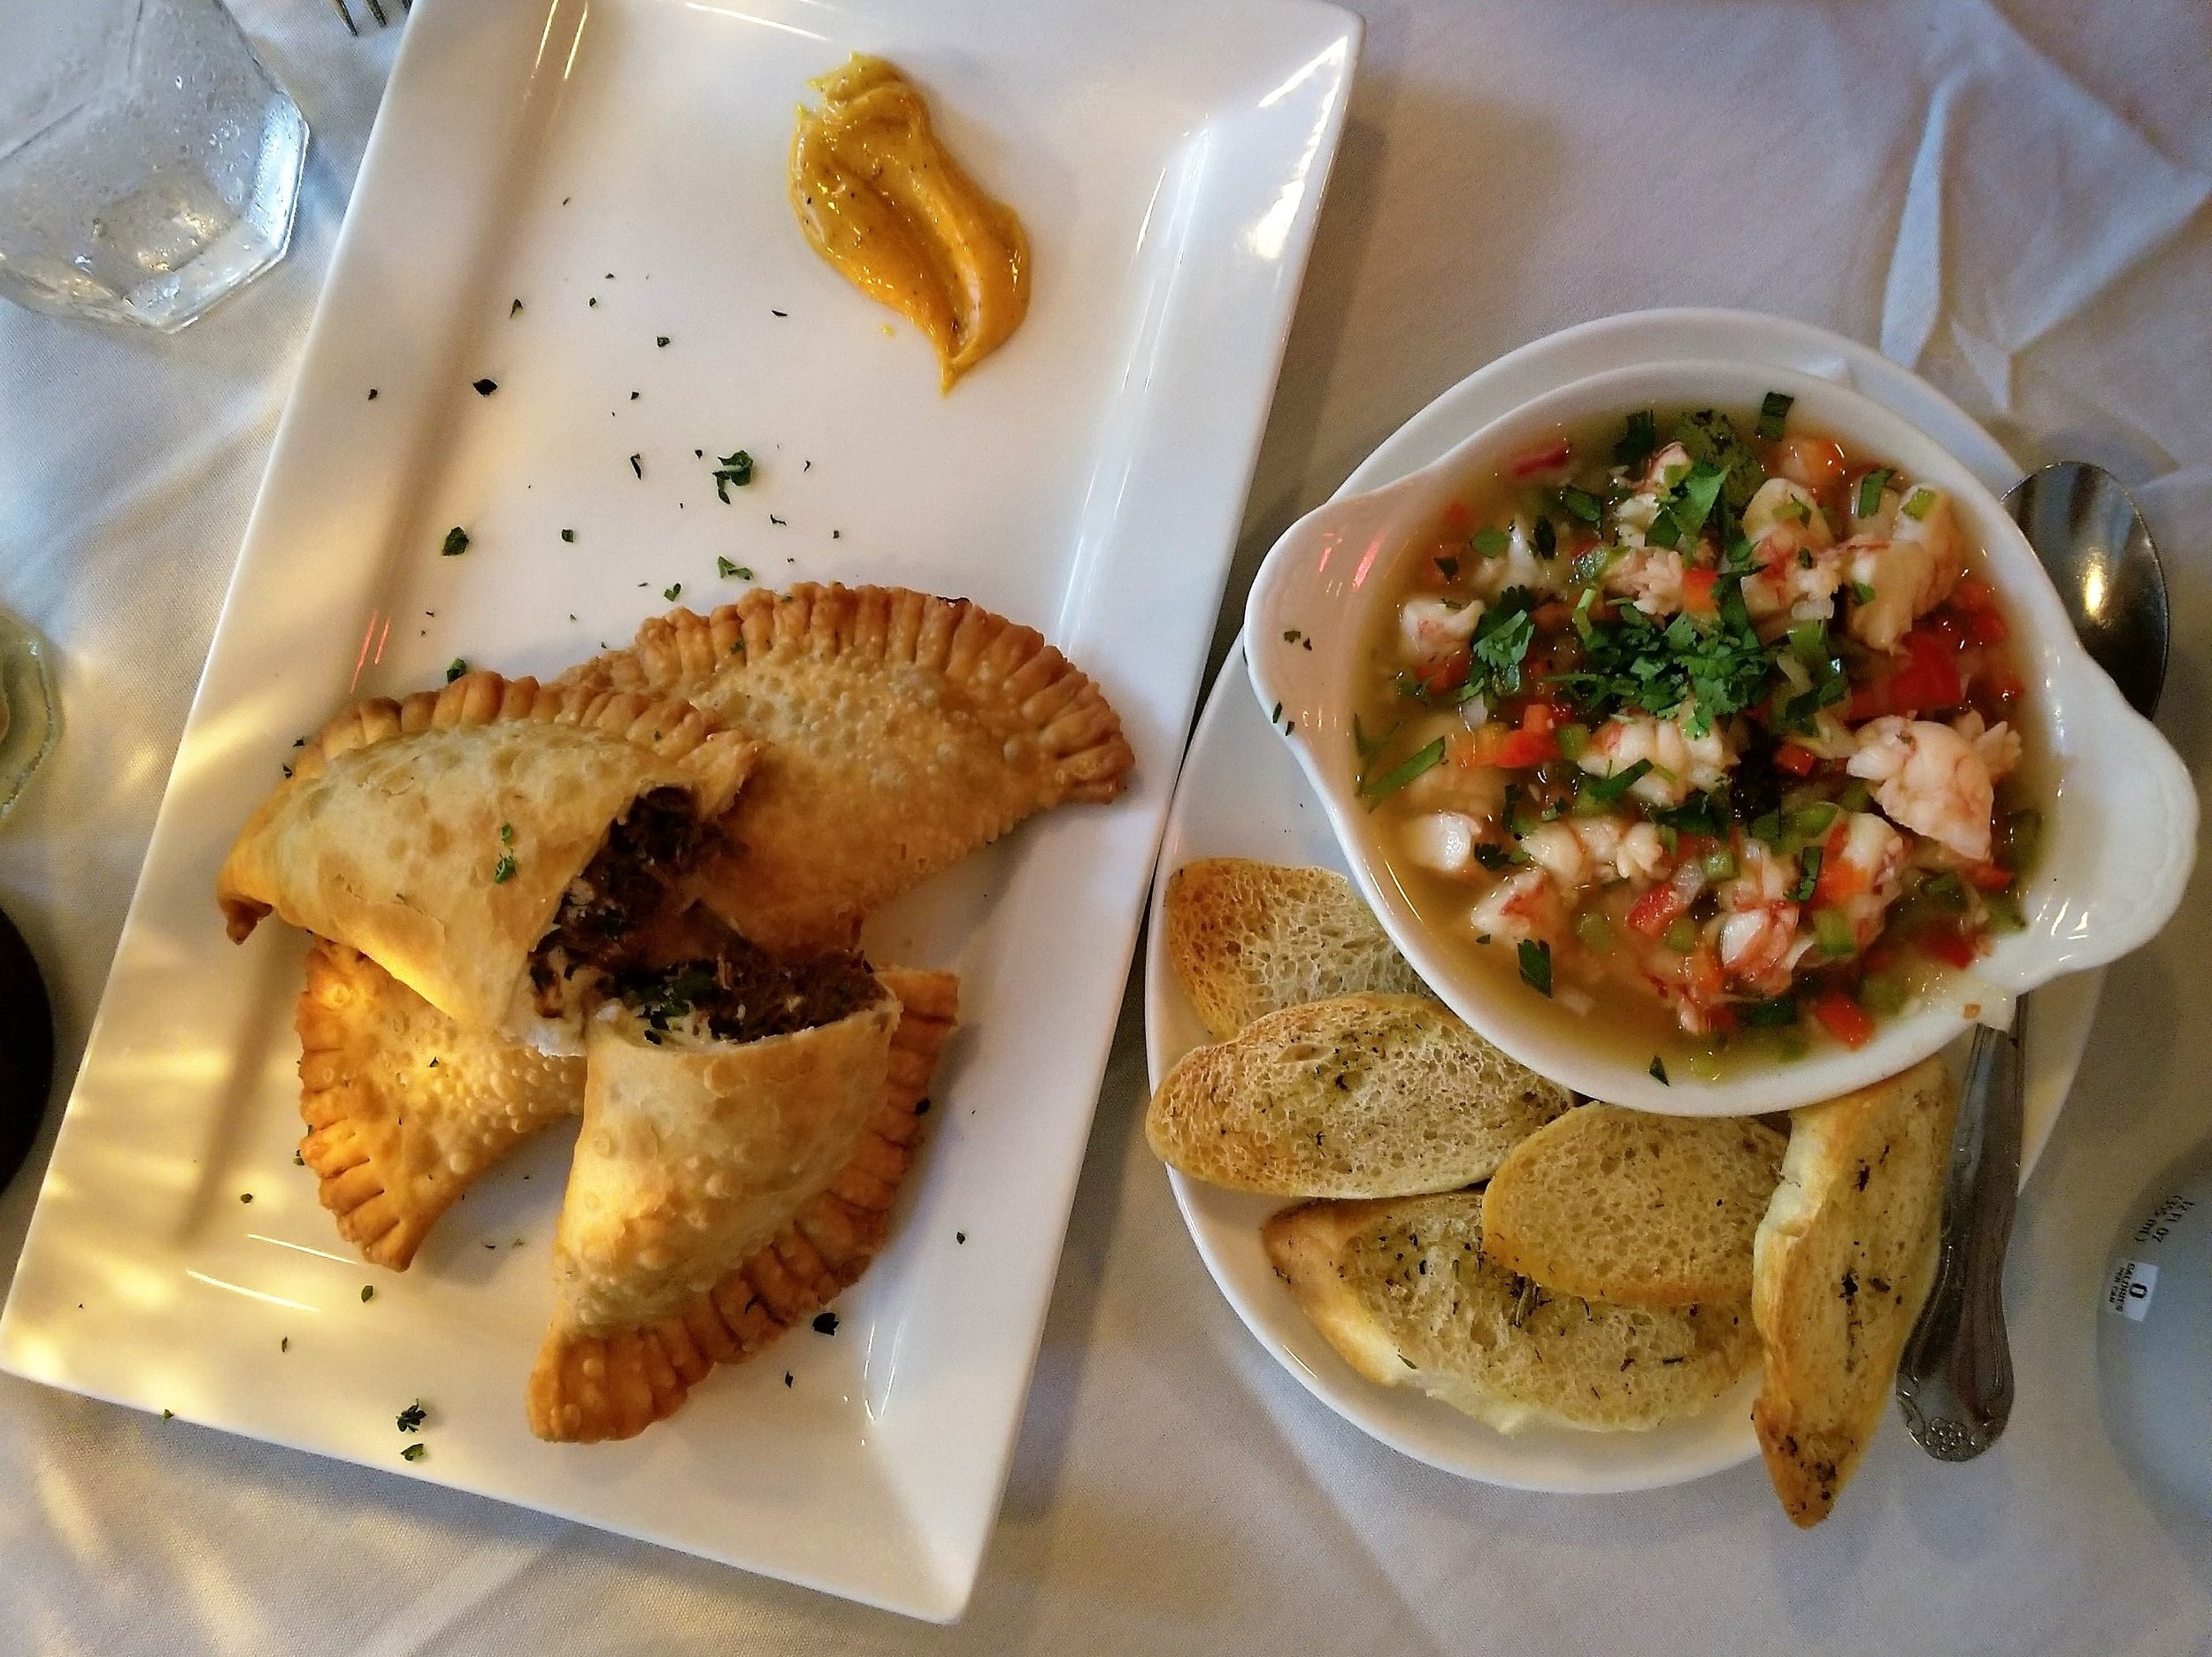 We did all tapas that evening which included the beef and goat cheese empanadas and shrimp ceviche (both pictured). Two other items not pictured (because it got dark in the dining room and the lighting was not great): Gambas Mozambique (shrimp sauteed with fresh garlic, paprika and parsley) and Escargot Andalusia Style (flambeed with brandy, garlic, onion and a creamy tomato sauce). We topped the meal off with a piece of tres leches cake, my all time fave.